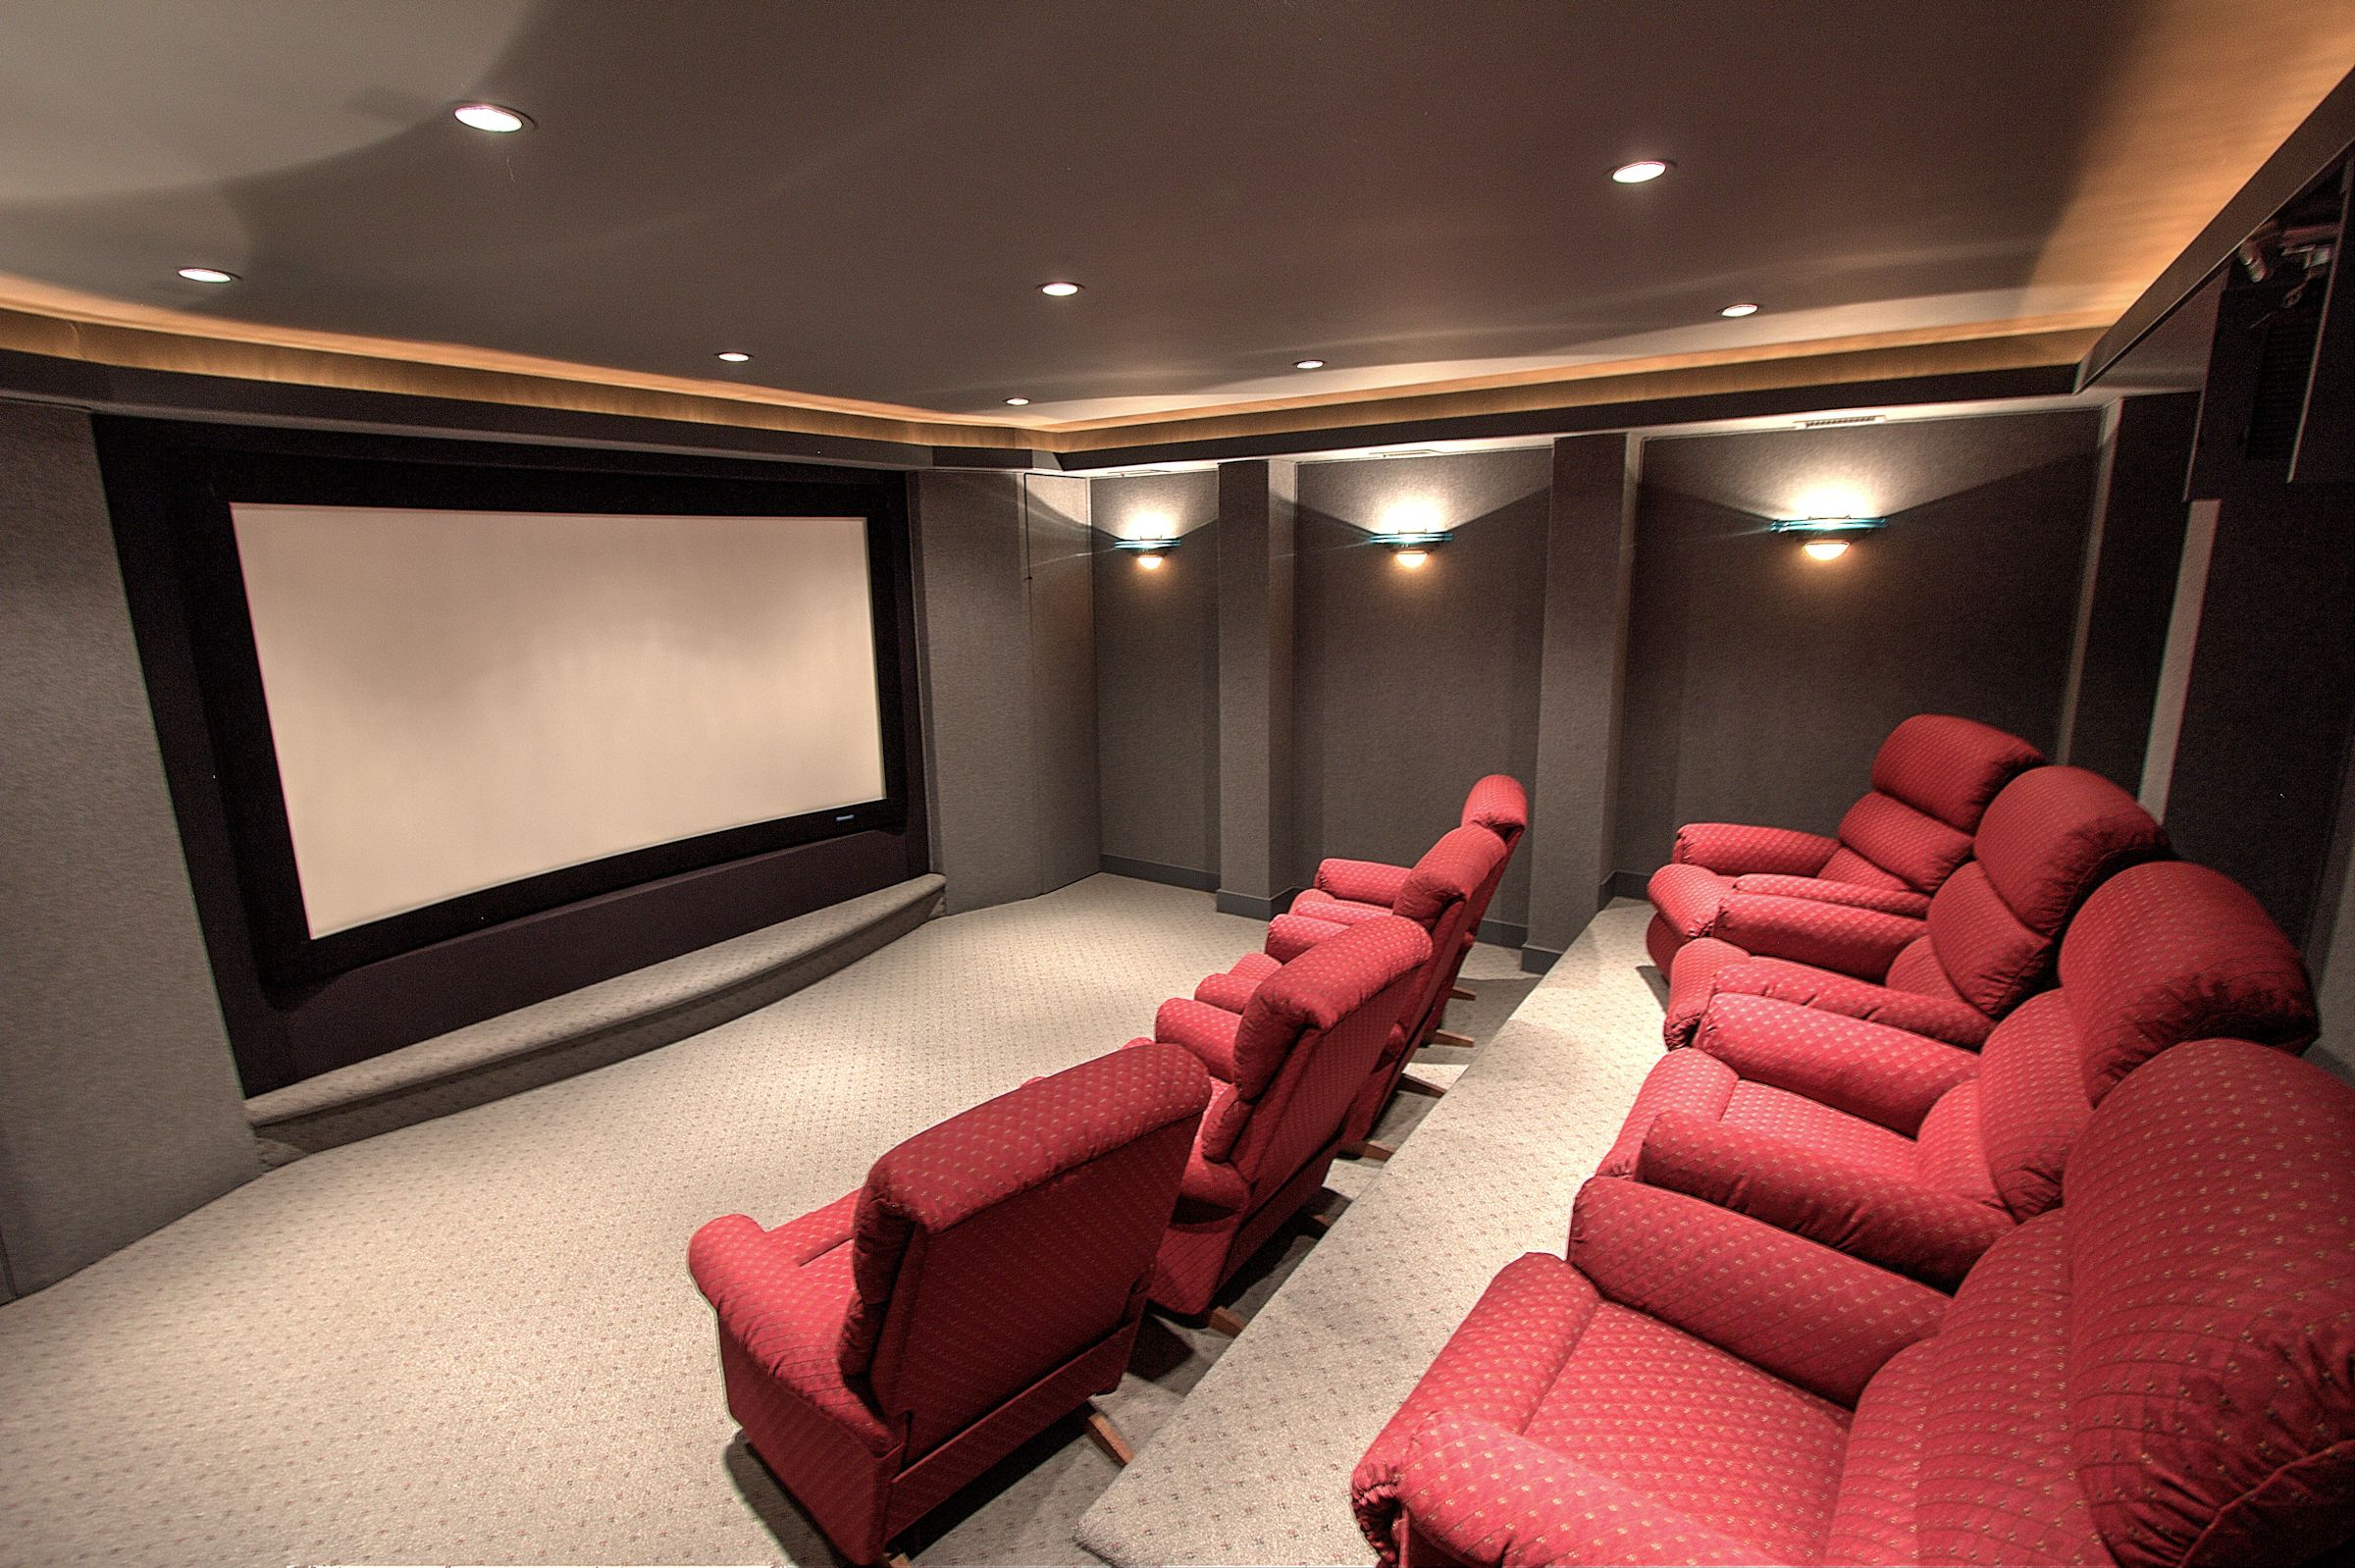 Cain's Home Theater, Full Image